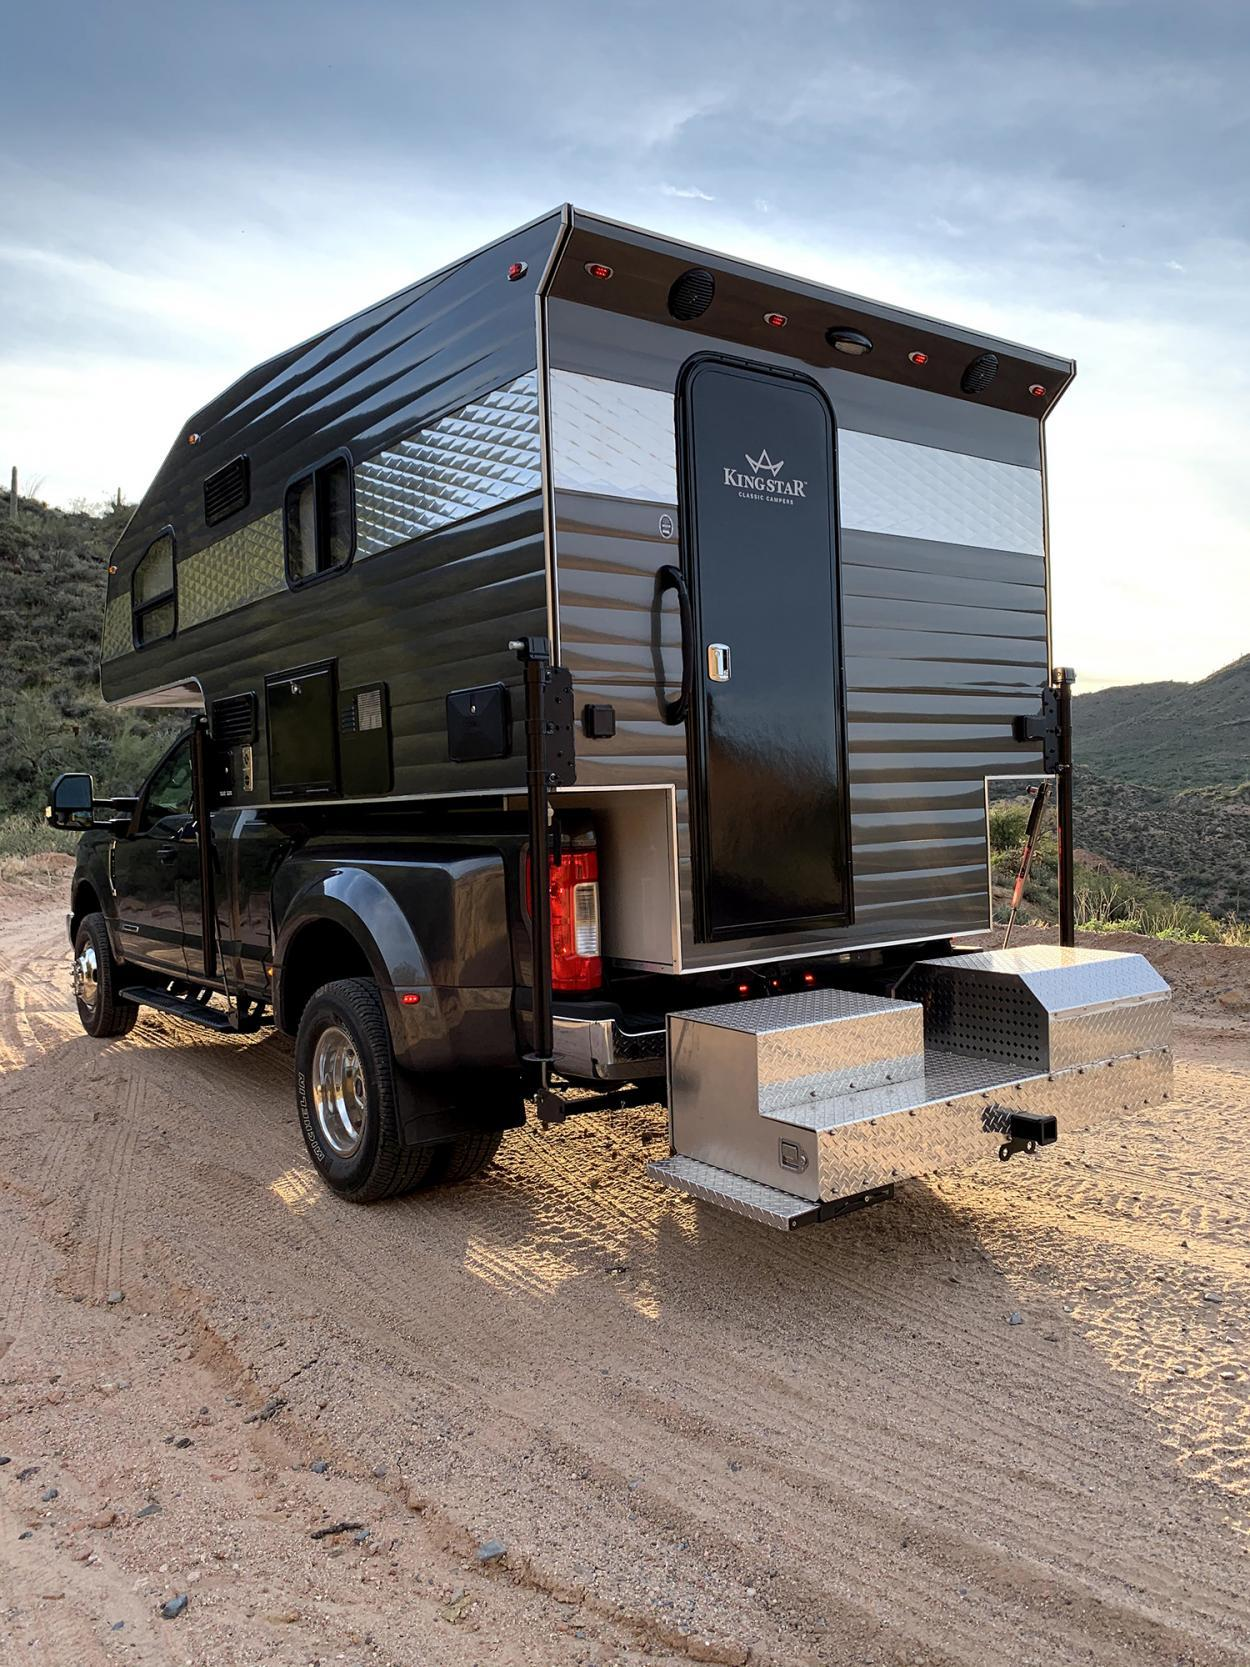 kingstar camino camper